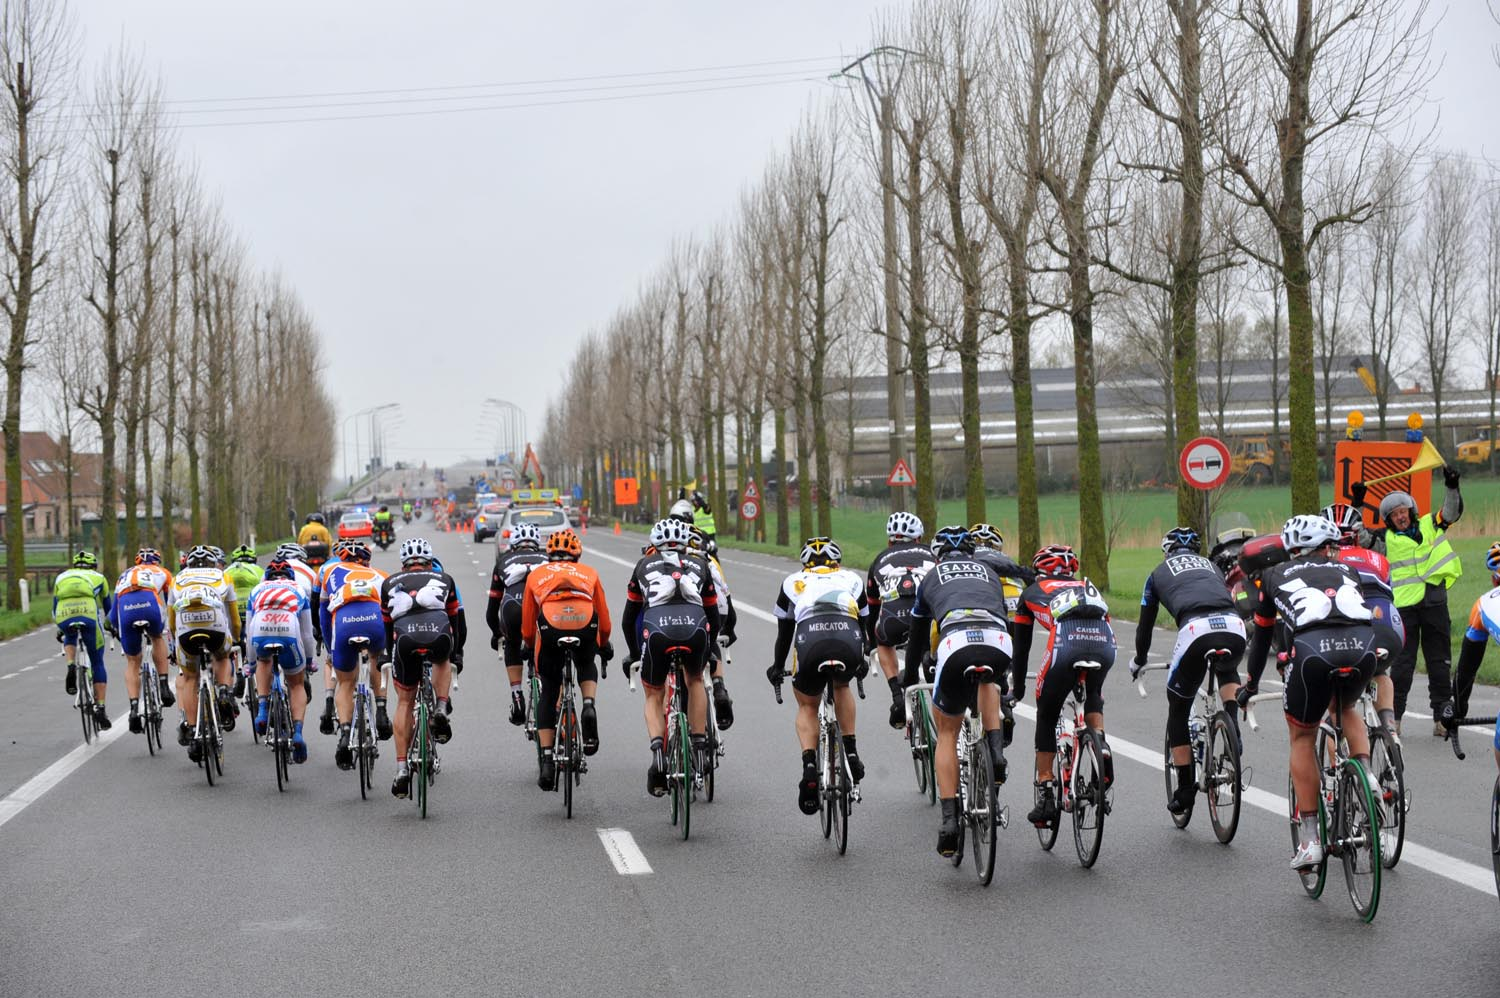 Lead break in Ghent Wevelgem echelon across the road